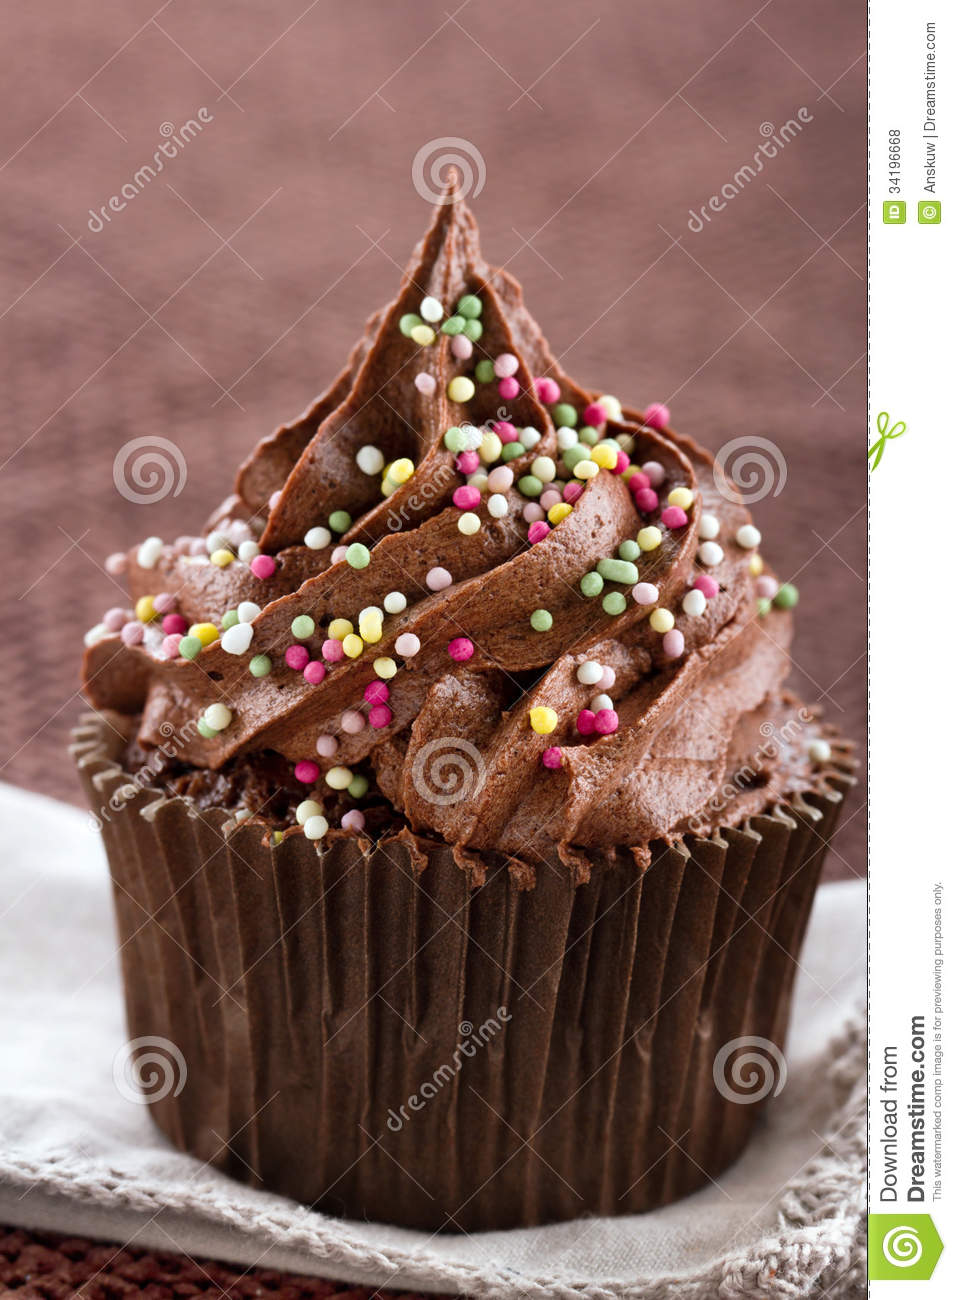 One Single Chocolate Cupcake With Sprinkles Royalty Free